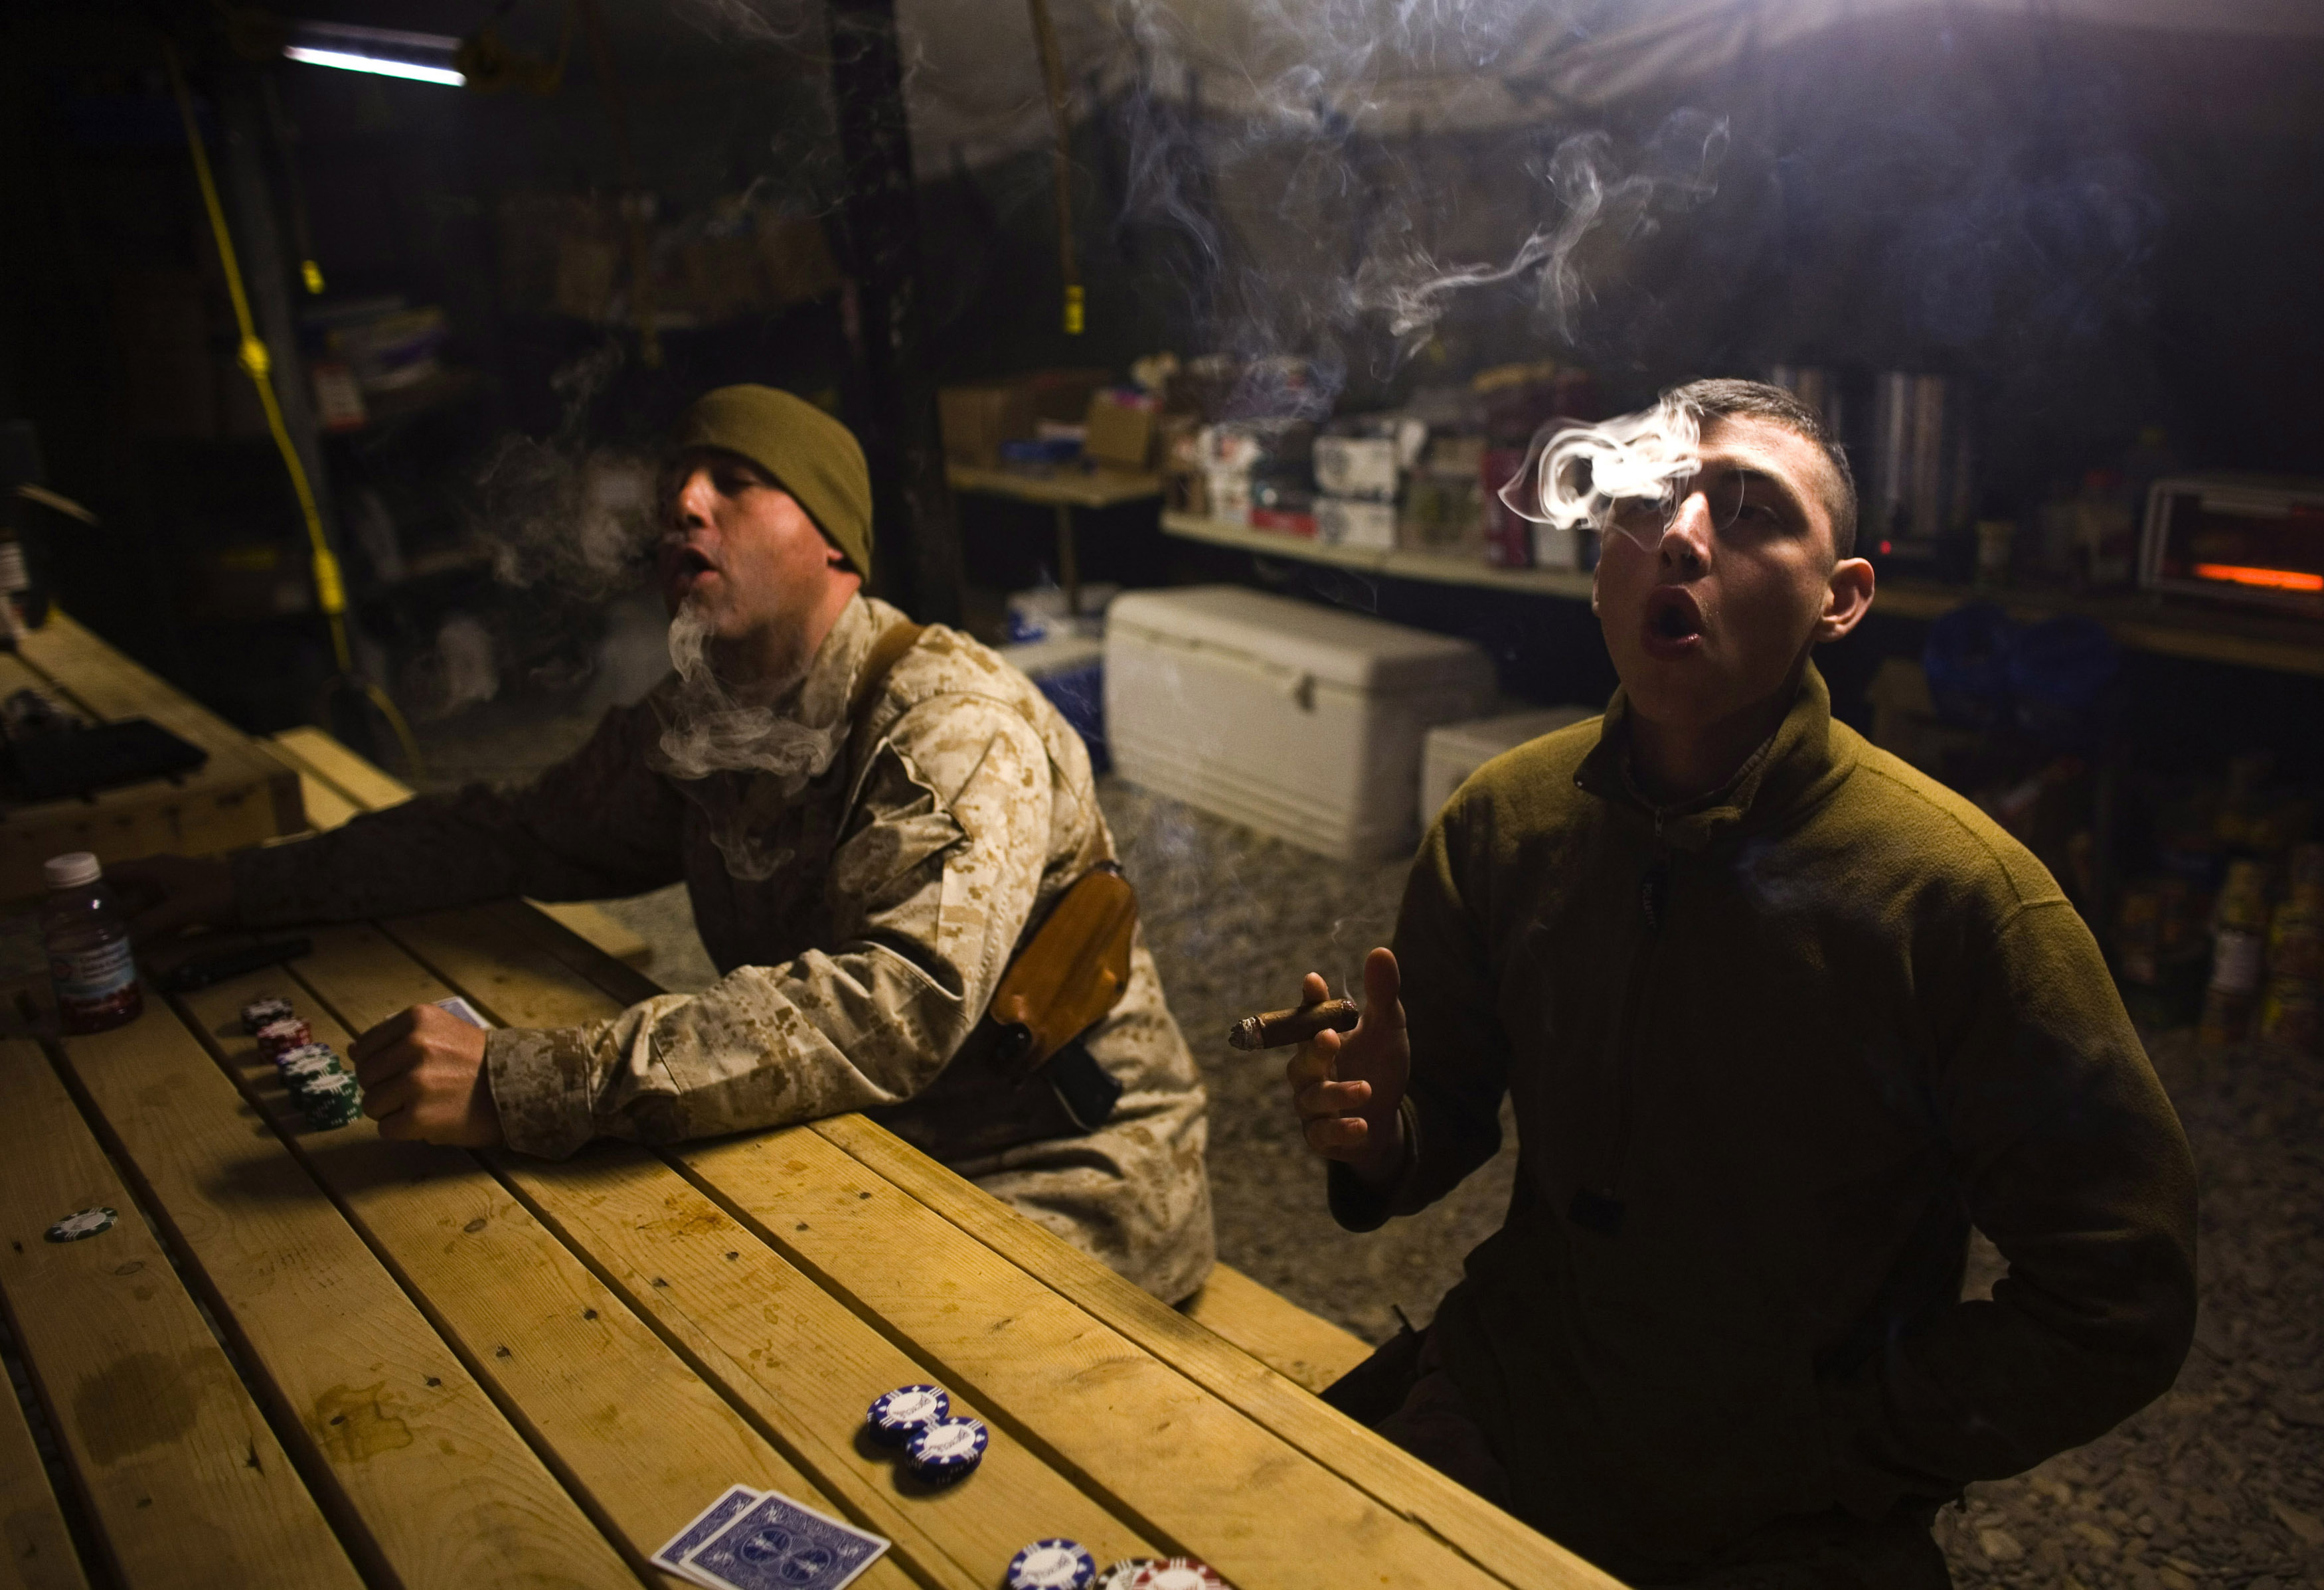 U.S. Marines from MP Company, 1st Marine Division attached to 3rd Battalion 4th Marines, smoke cigars as they play cards at AHP station in Nimroz province, southern Afghanistan January 14, 2010. REUTERS/Stringer